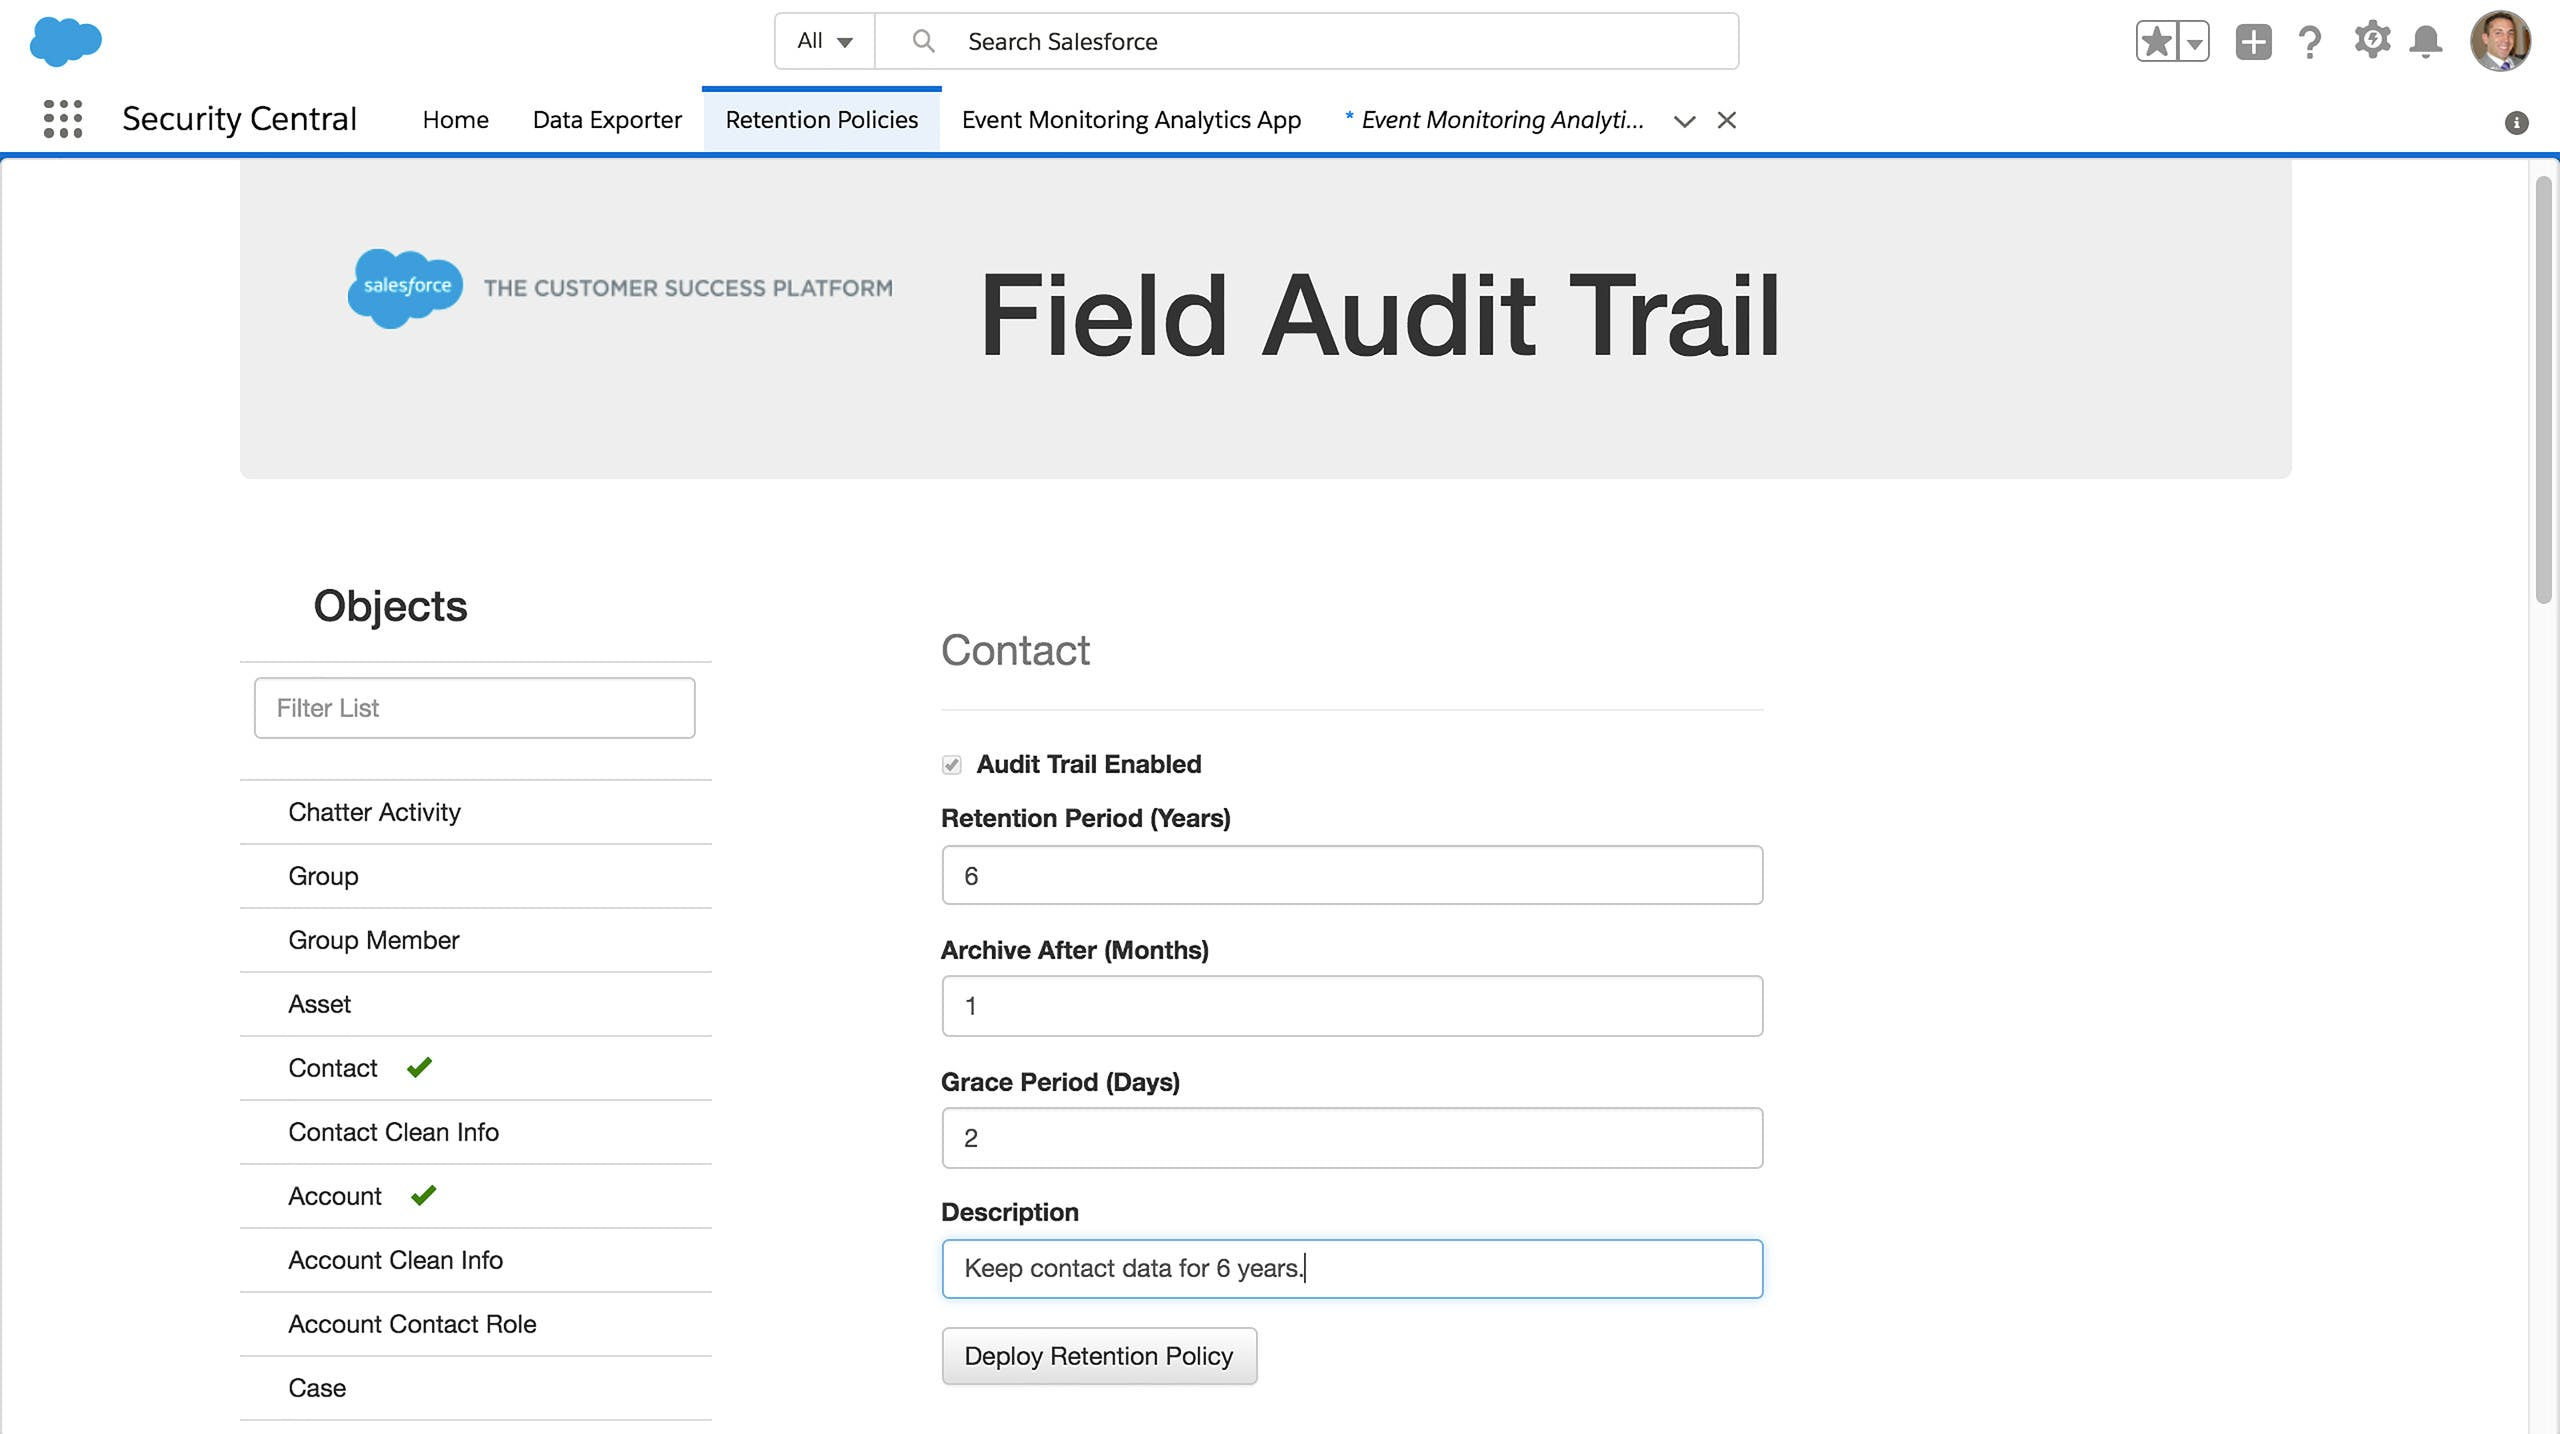 Review the Audit Trail